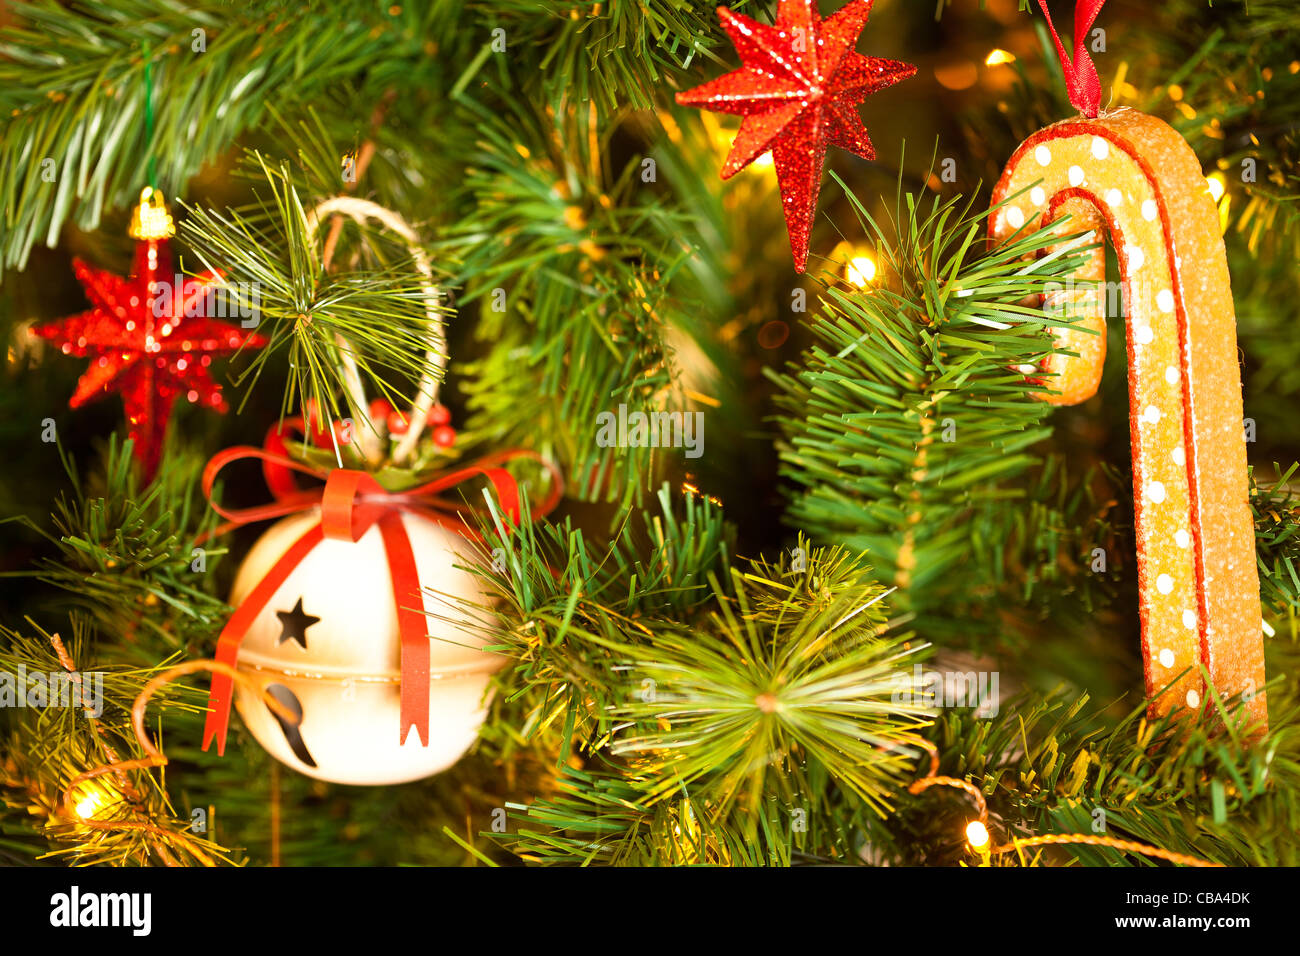 Christmas Decorations hanging in the christmas tree Stock Photo